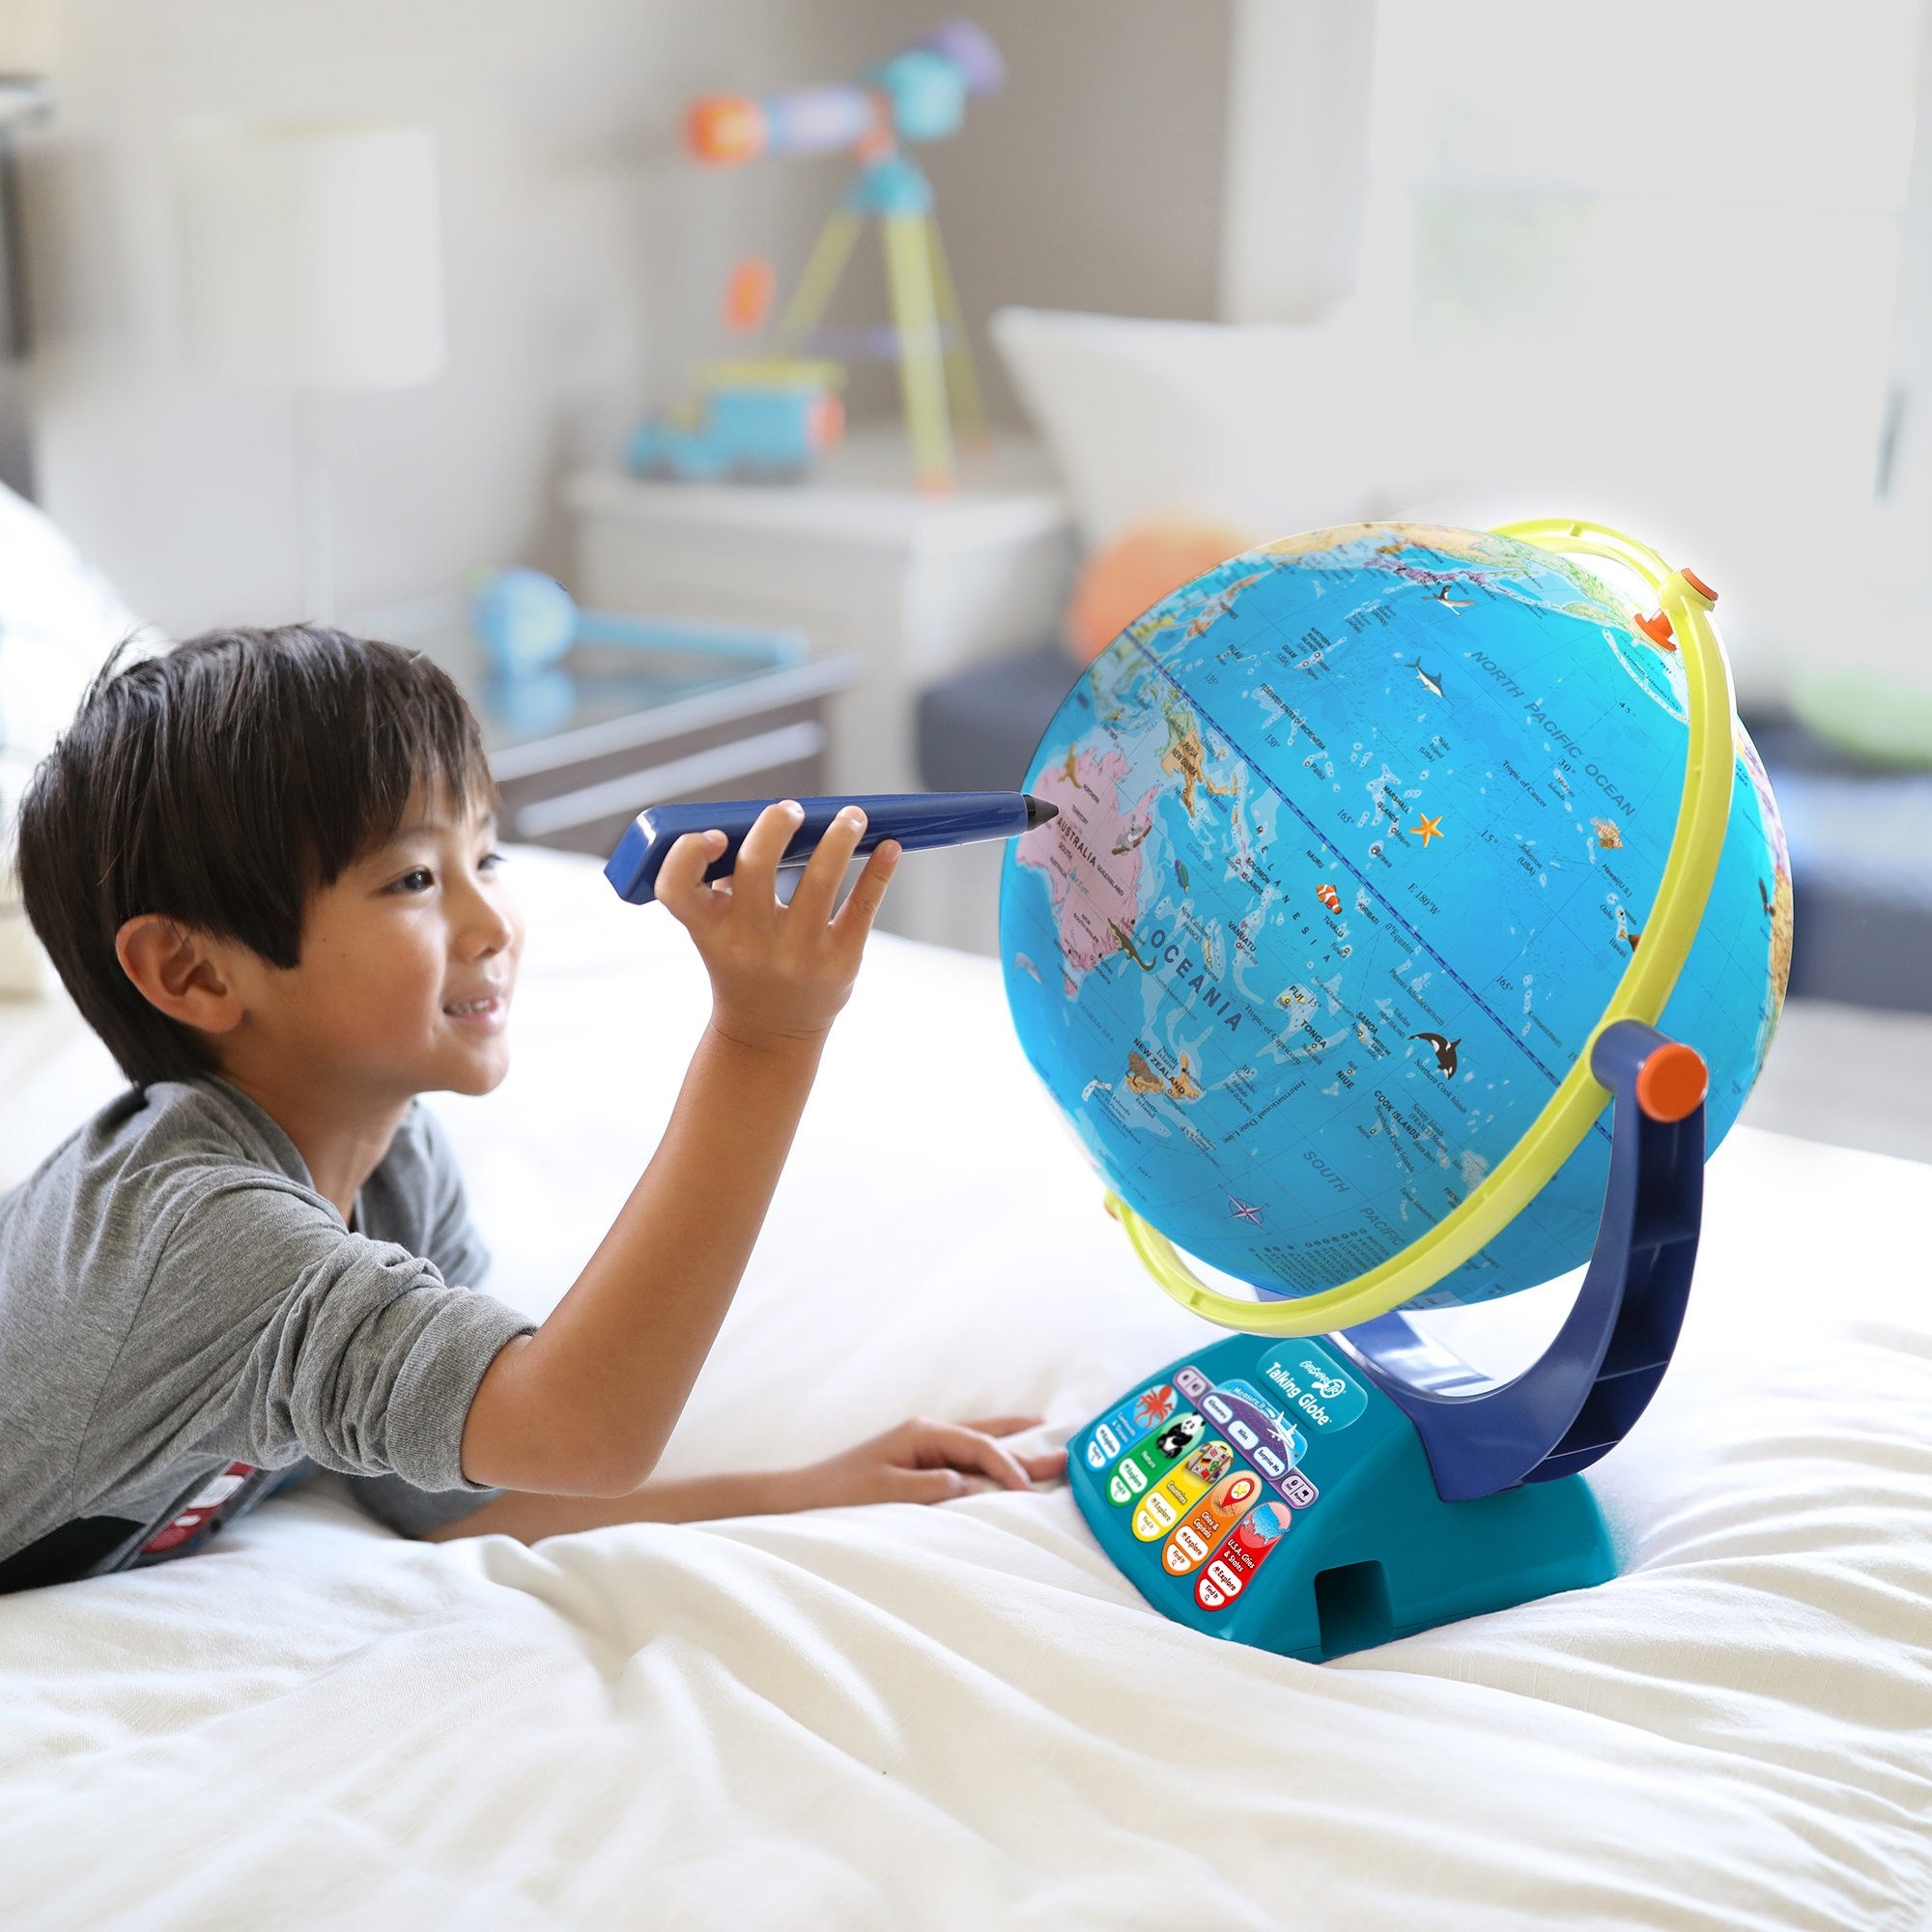 Educational Insights Geosafari Jr. Talking Globe-Featuring Bindi Irwin-Learning Toy by Educational Insights (Image #2)